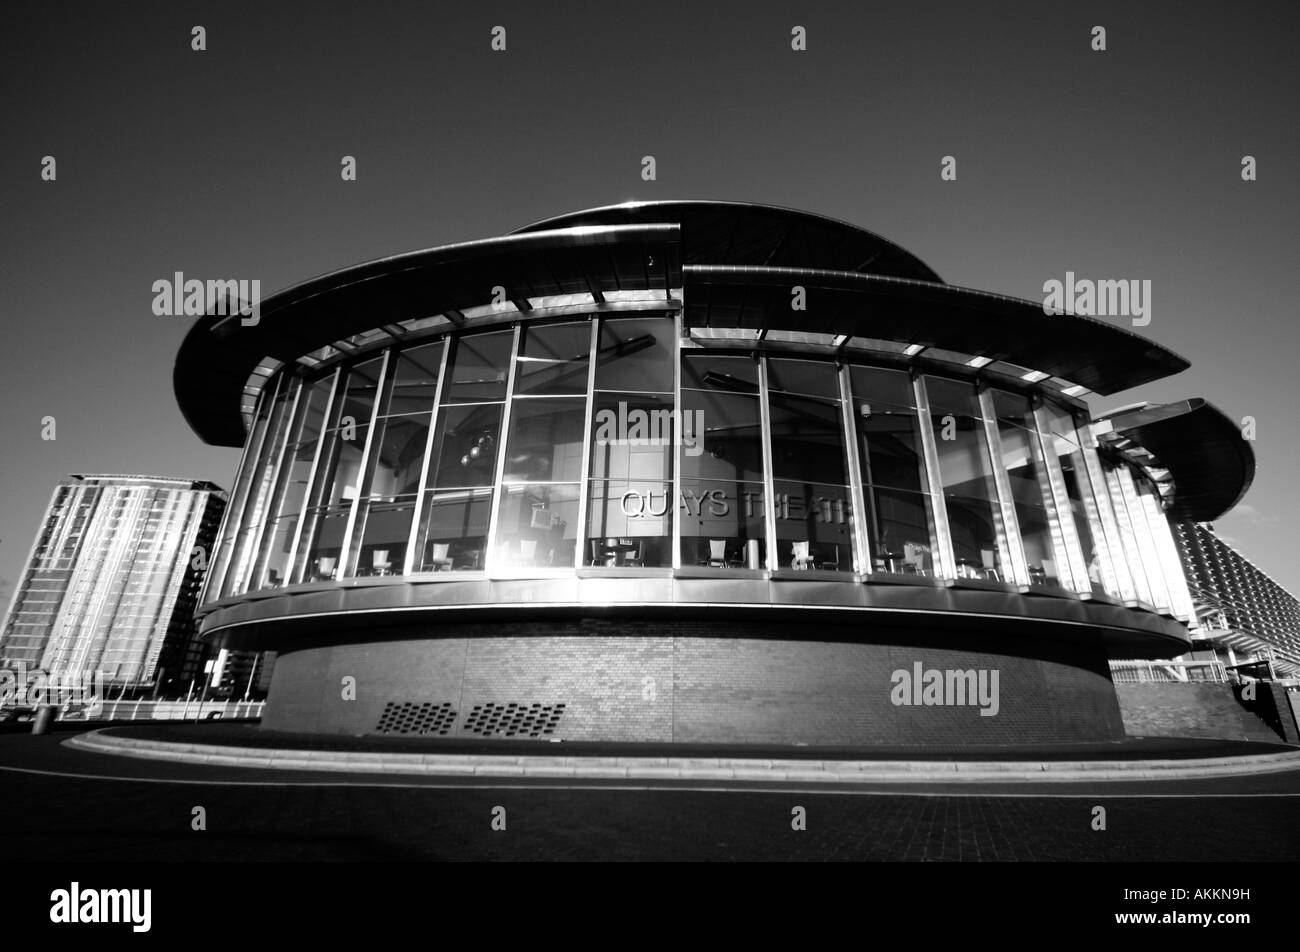 Wide angle view of The Lowry, Salford Quays, Manchester, UK - Stock Image